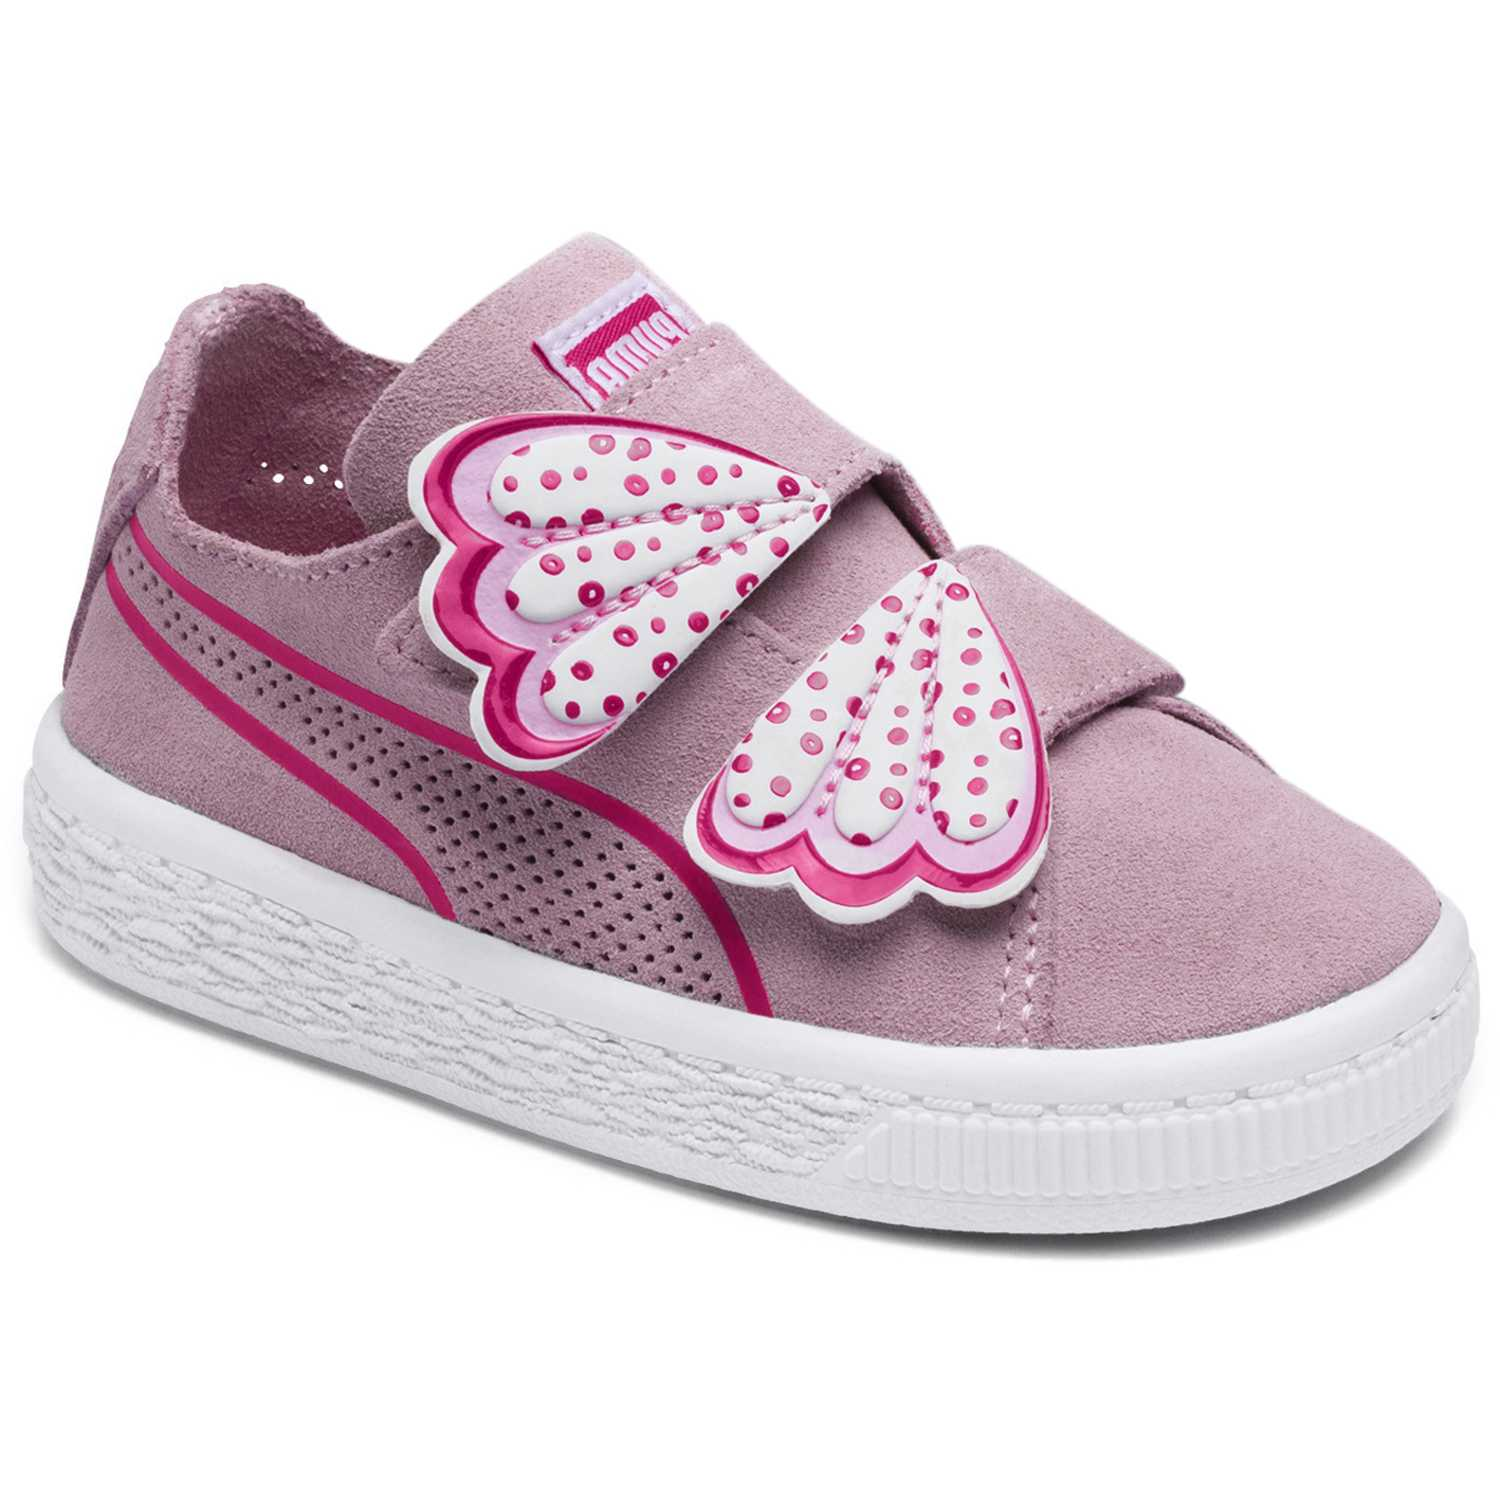 Puma suede deconstruct butterfly v inf Rosado / blanco Walking